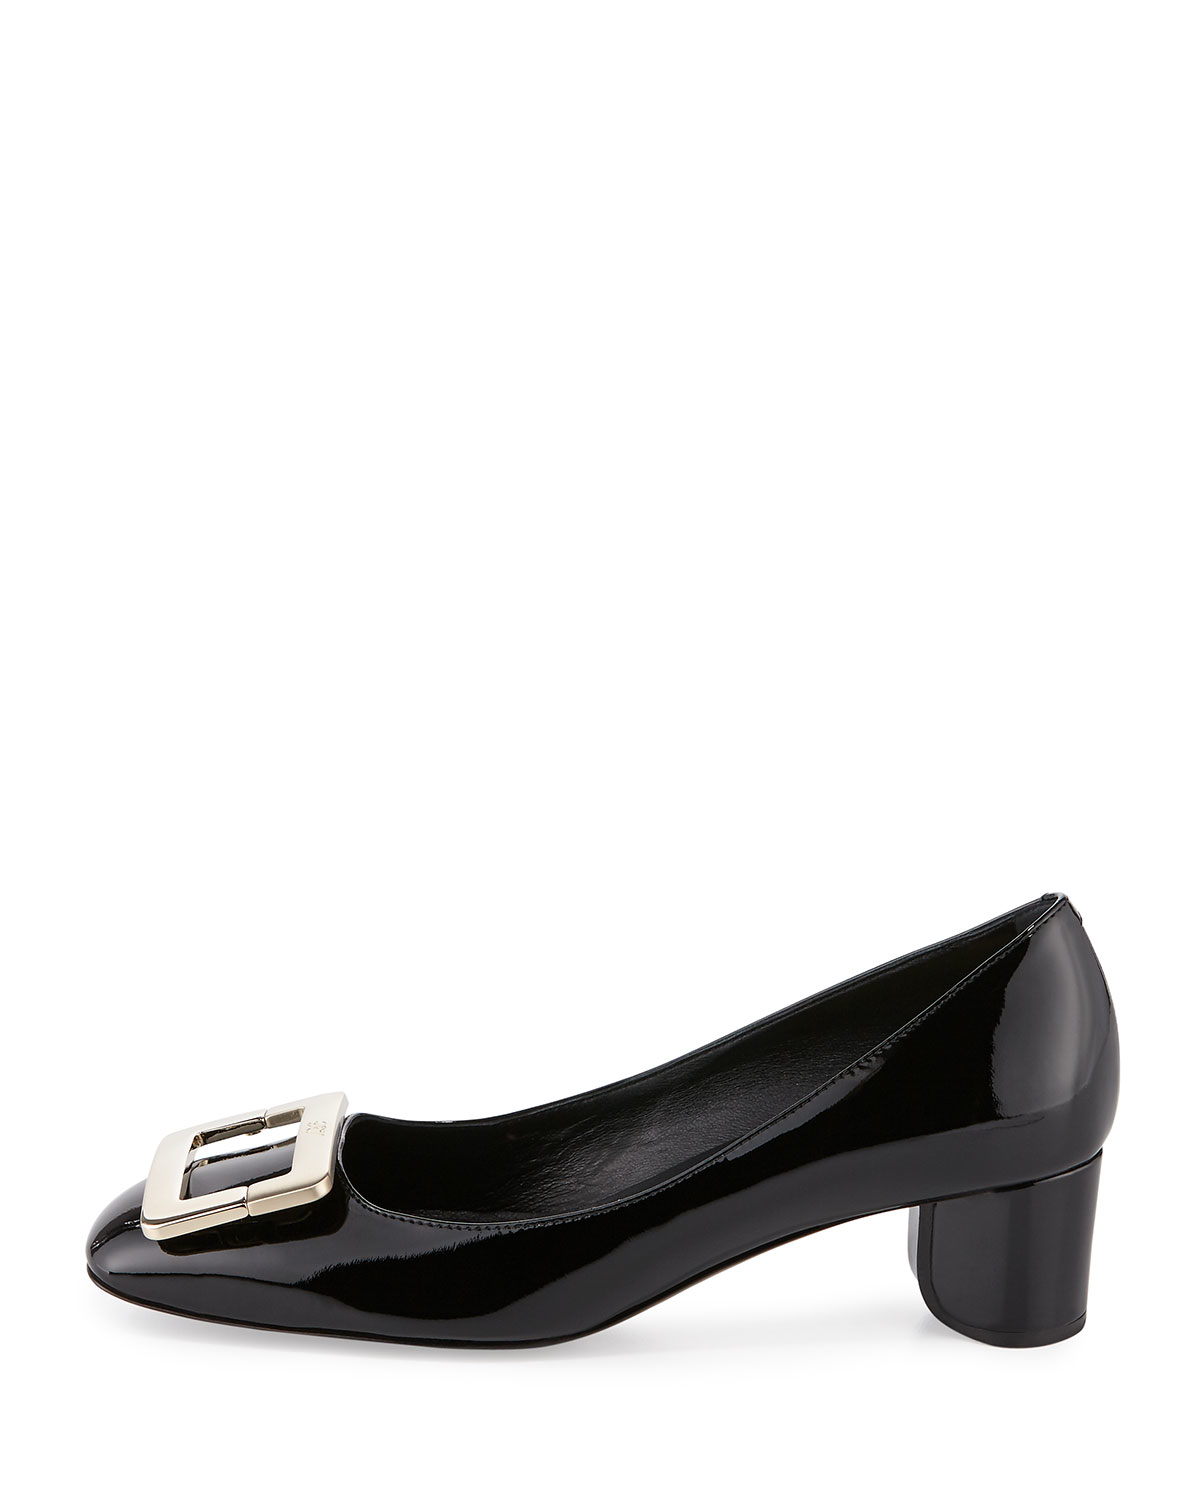 1d96267341 Roger Vivier Decollete U-cut Mid-heel Pump in Black - Lyst